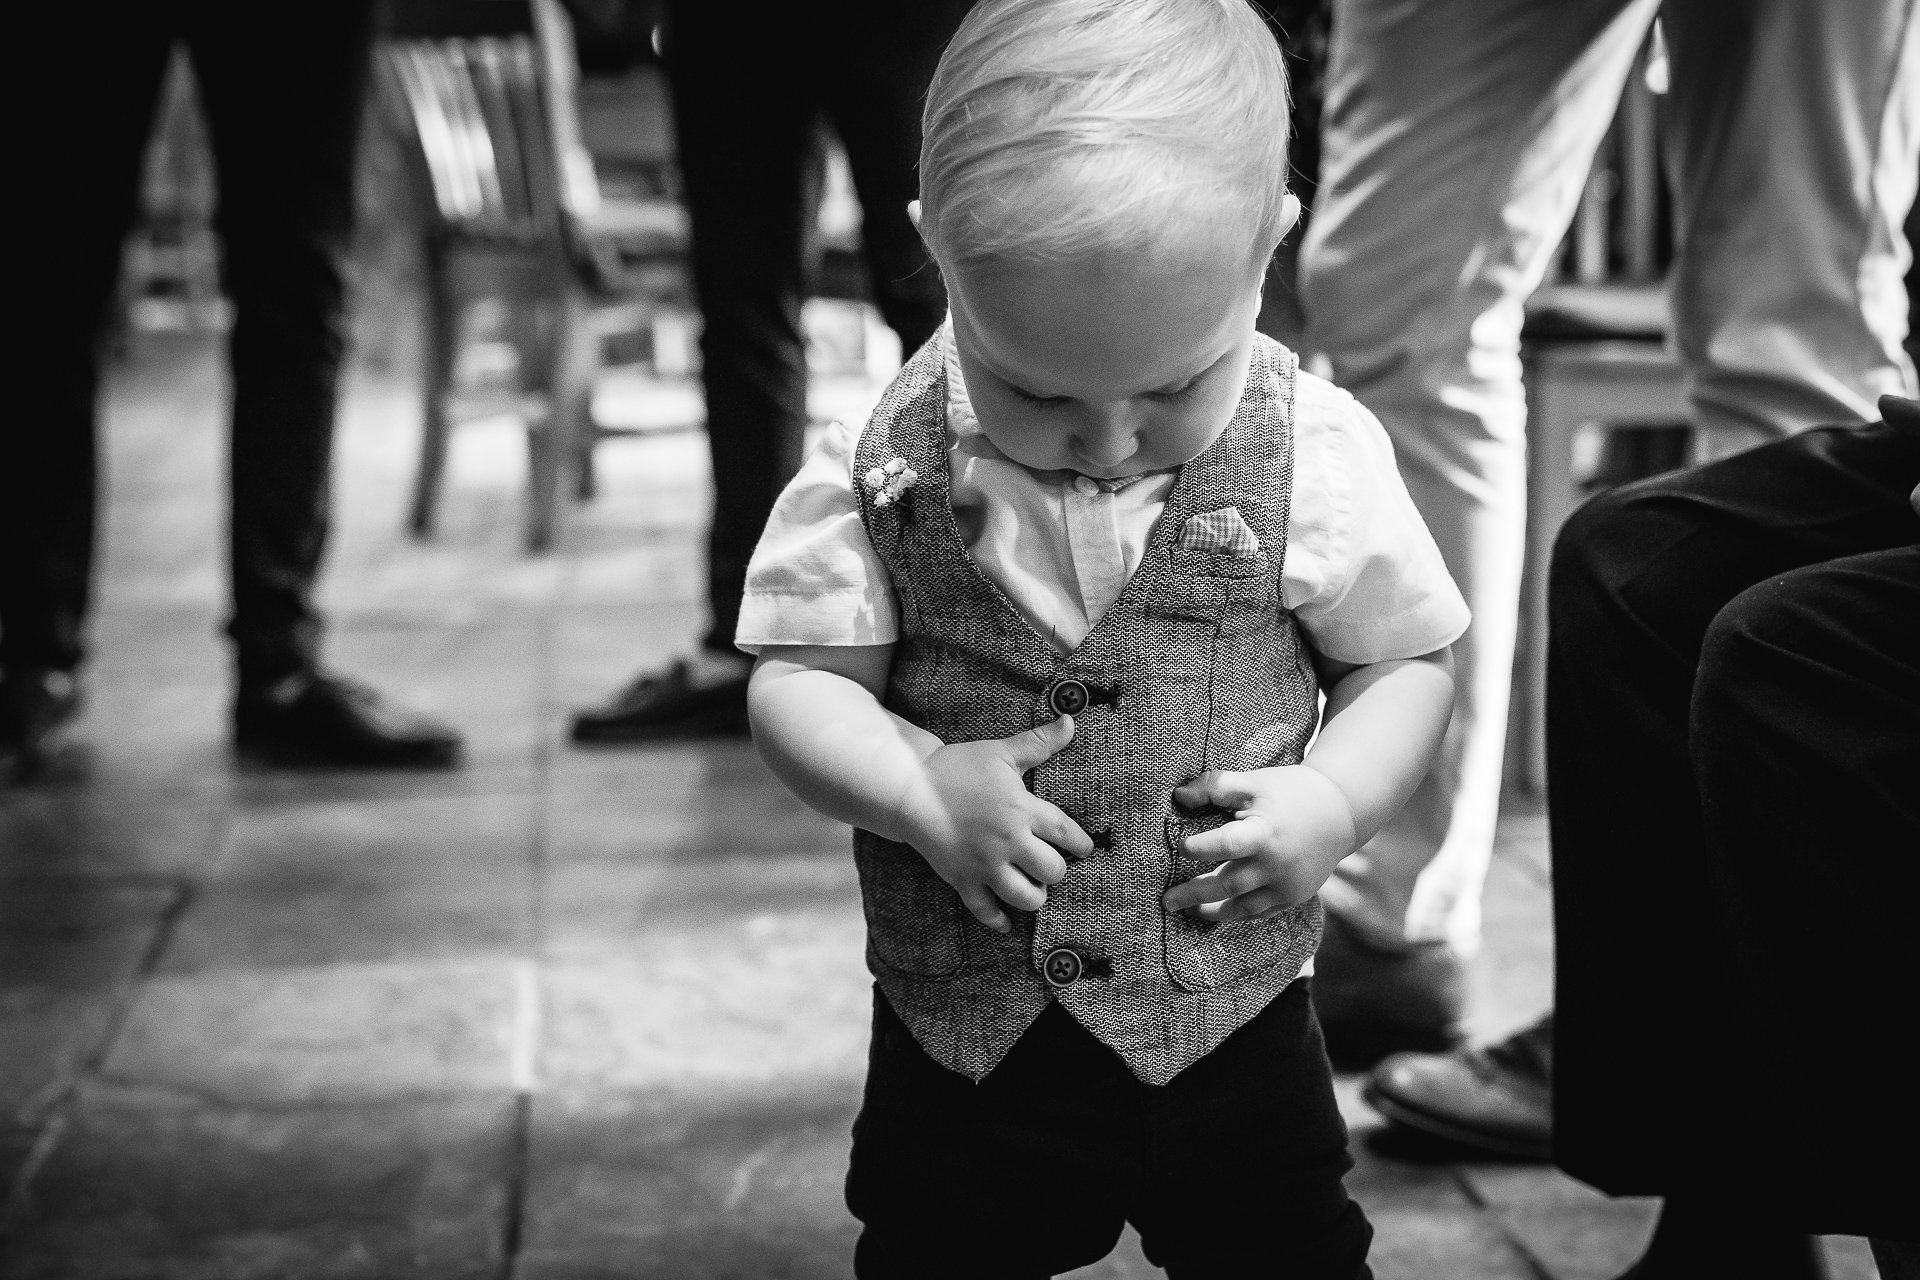 Toddler in his wedding waistcoat before the wedding